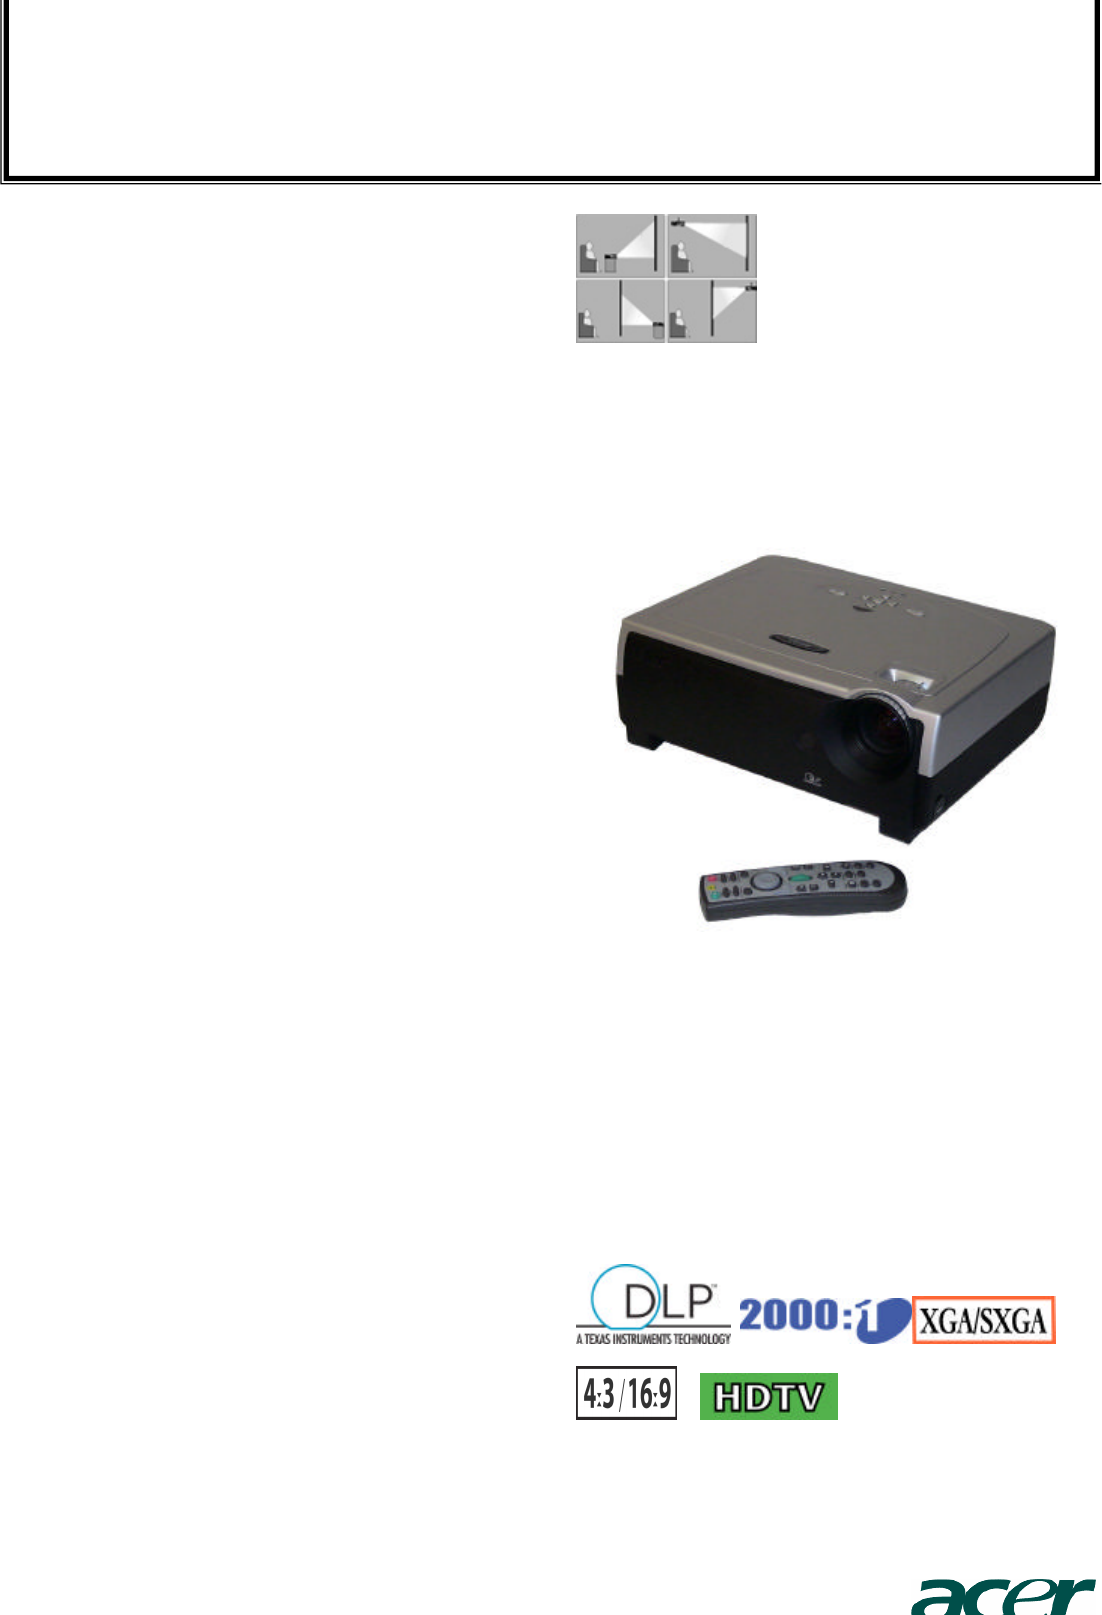 acer projector pd723p user guide manualsonline com rh manualsonline com Acer Drivers Acer Aspire One Manual